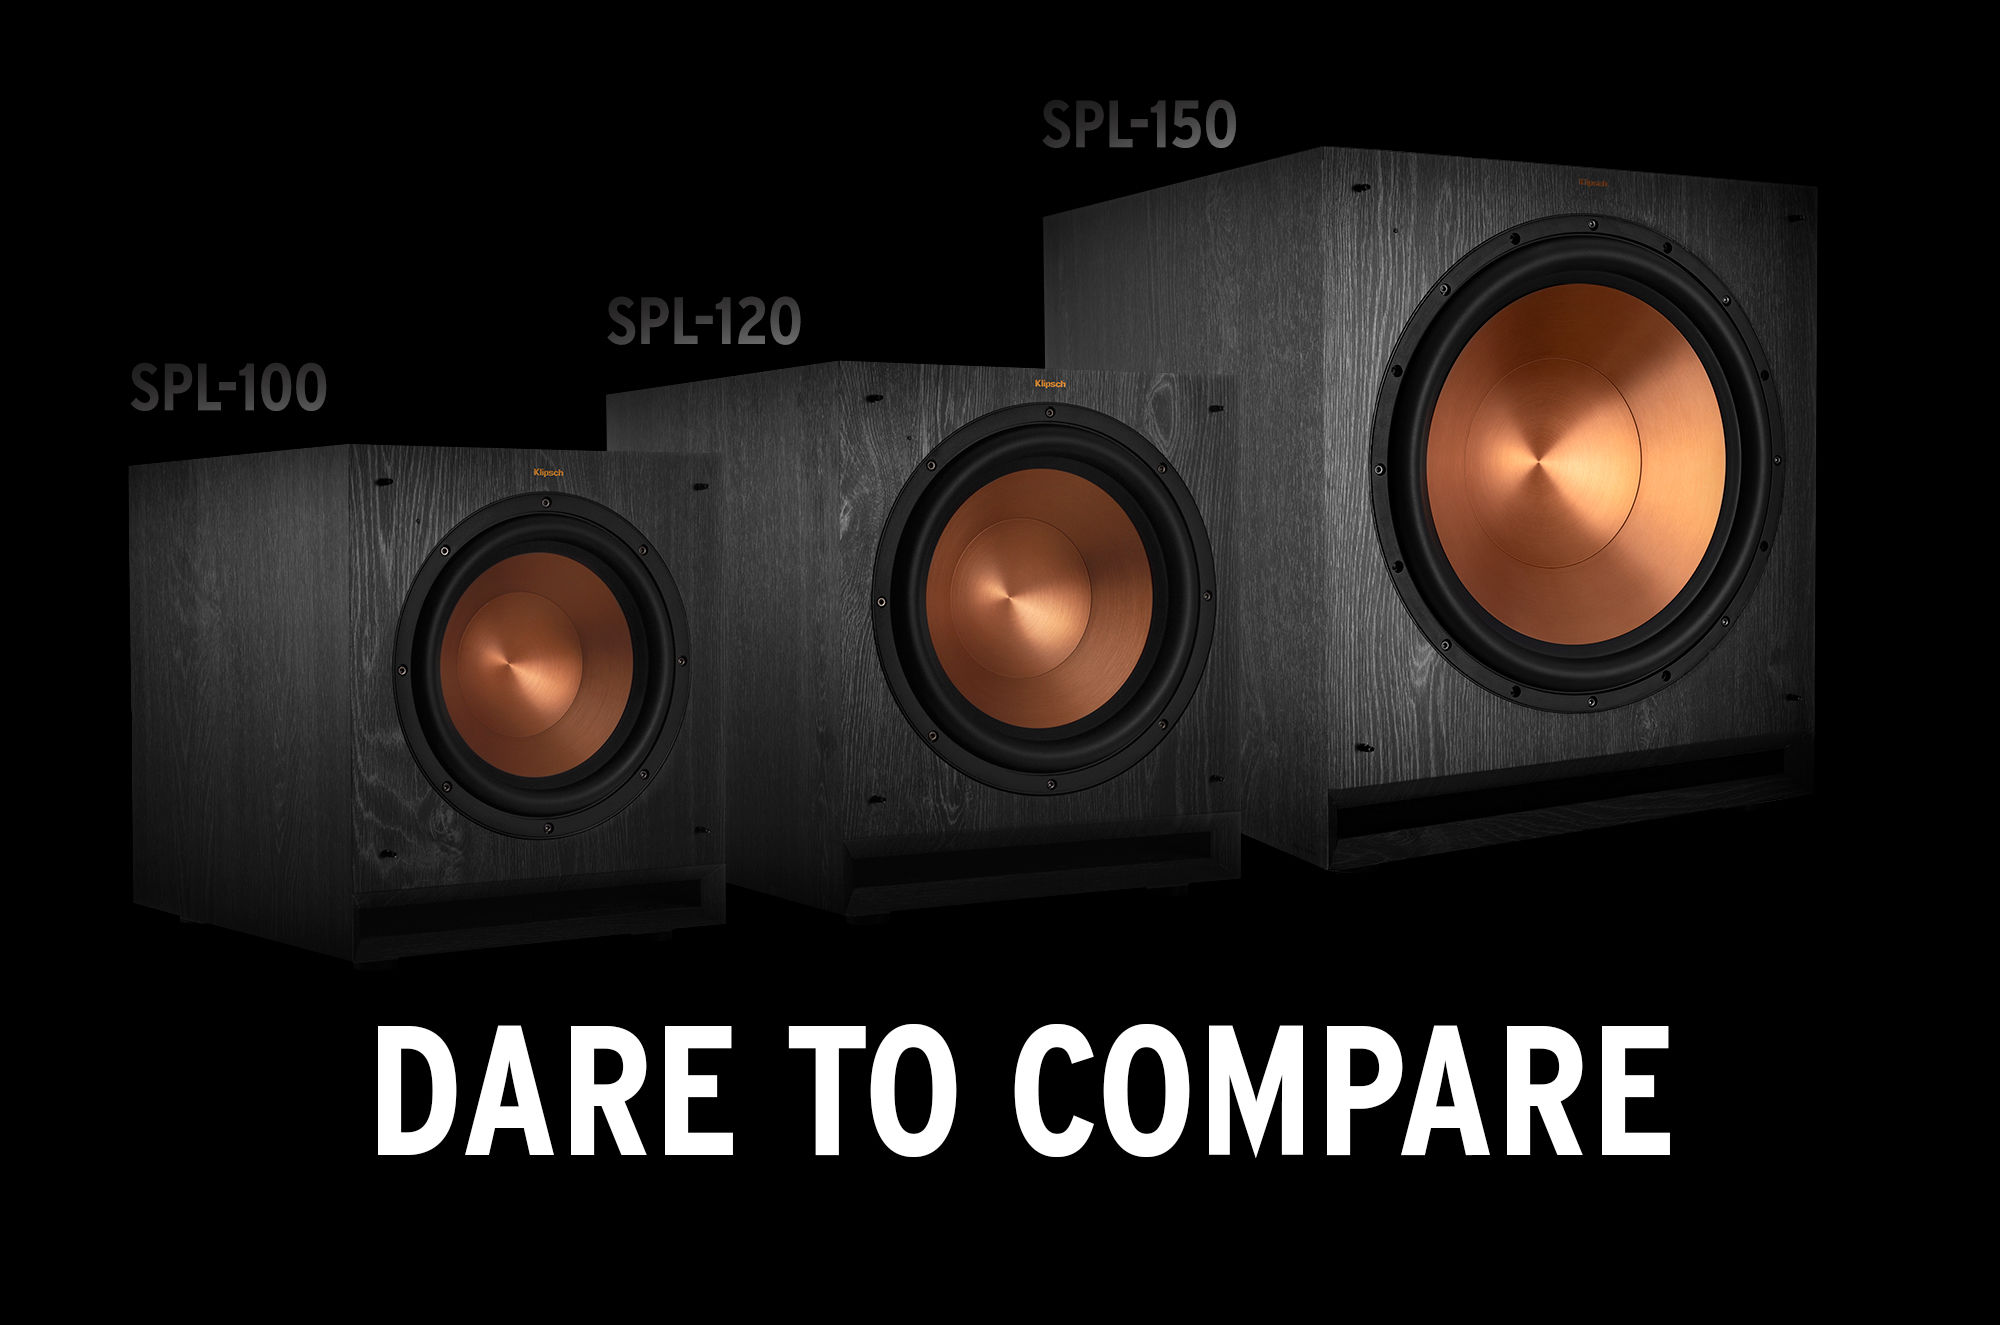 Comparison of SPL subwoofers